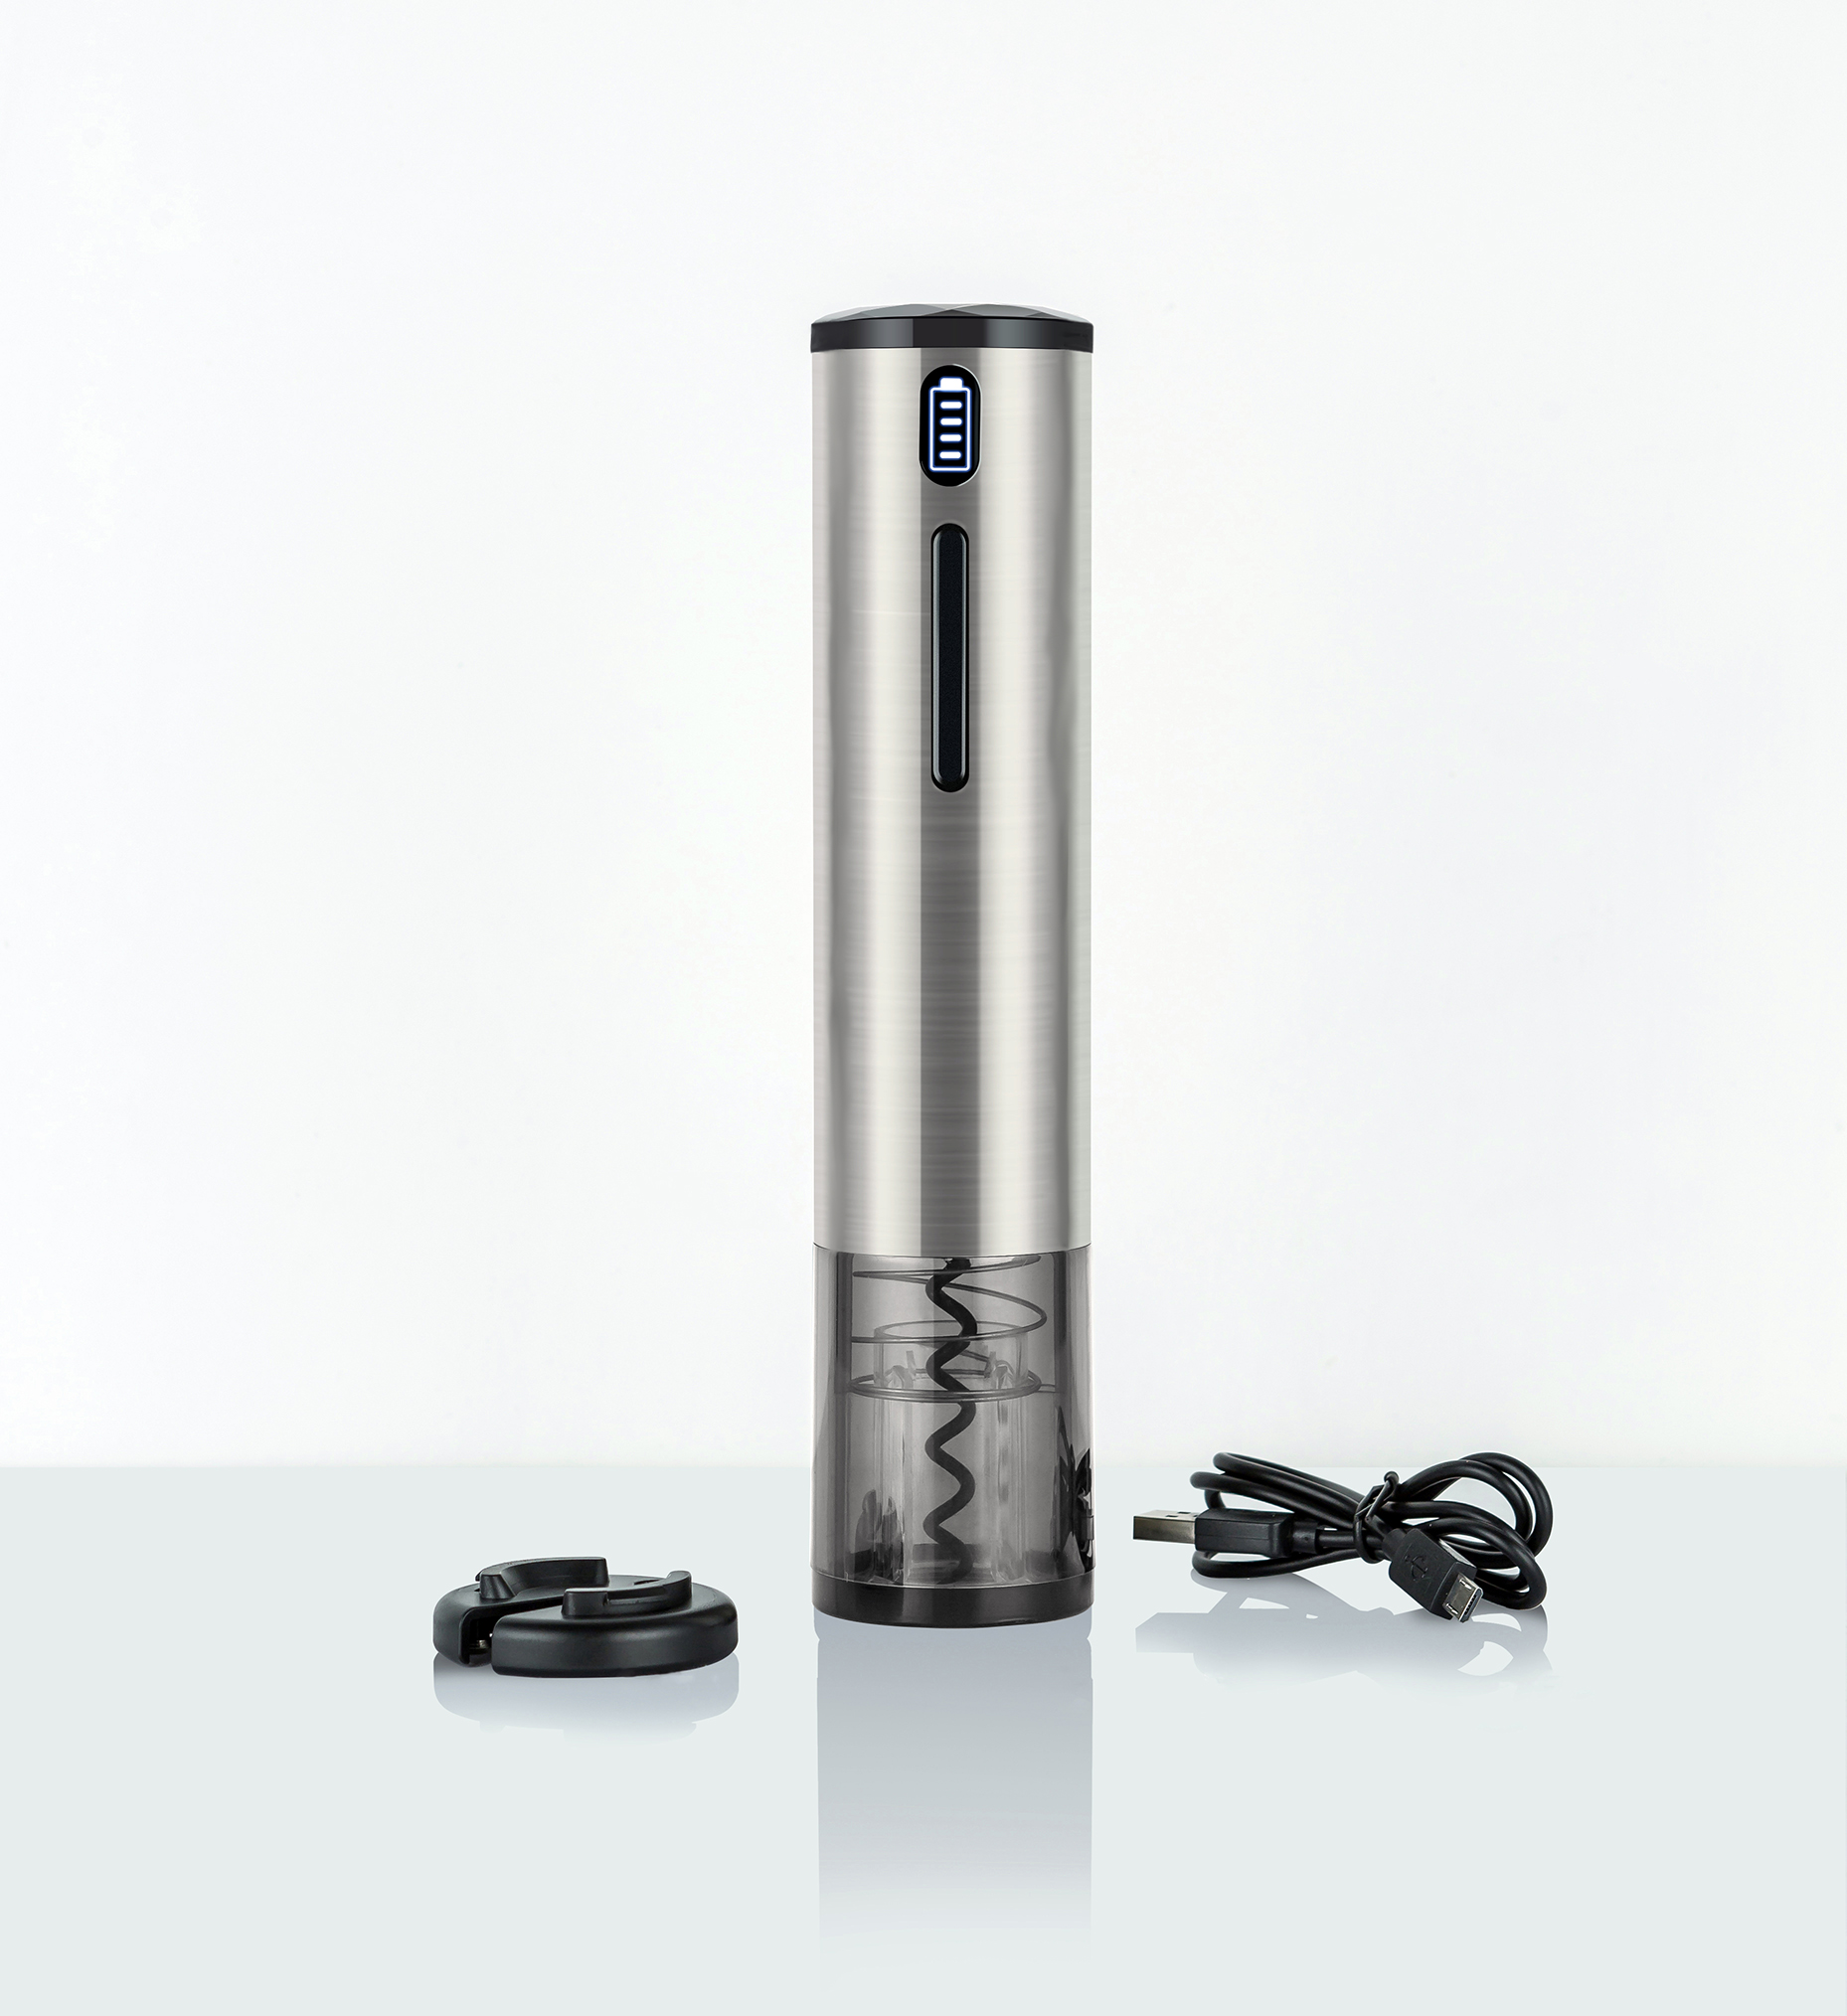 4 in 1 Stainless Steel USB Rechargeable Electric Wine <strong>Bottle</strong> <strong>Opener</strong> <strong>Automatic</strong> Electric Wine <strong>Opener</strong>